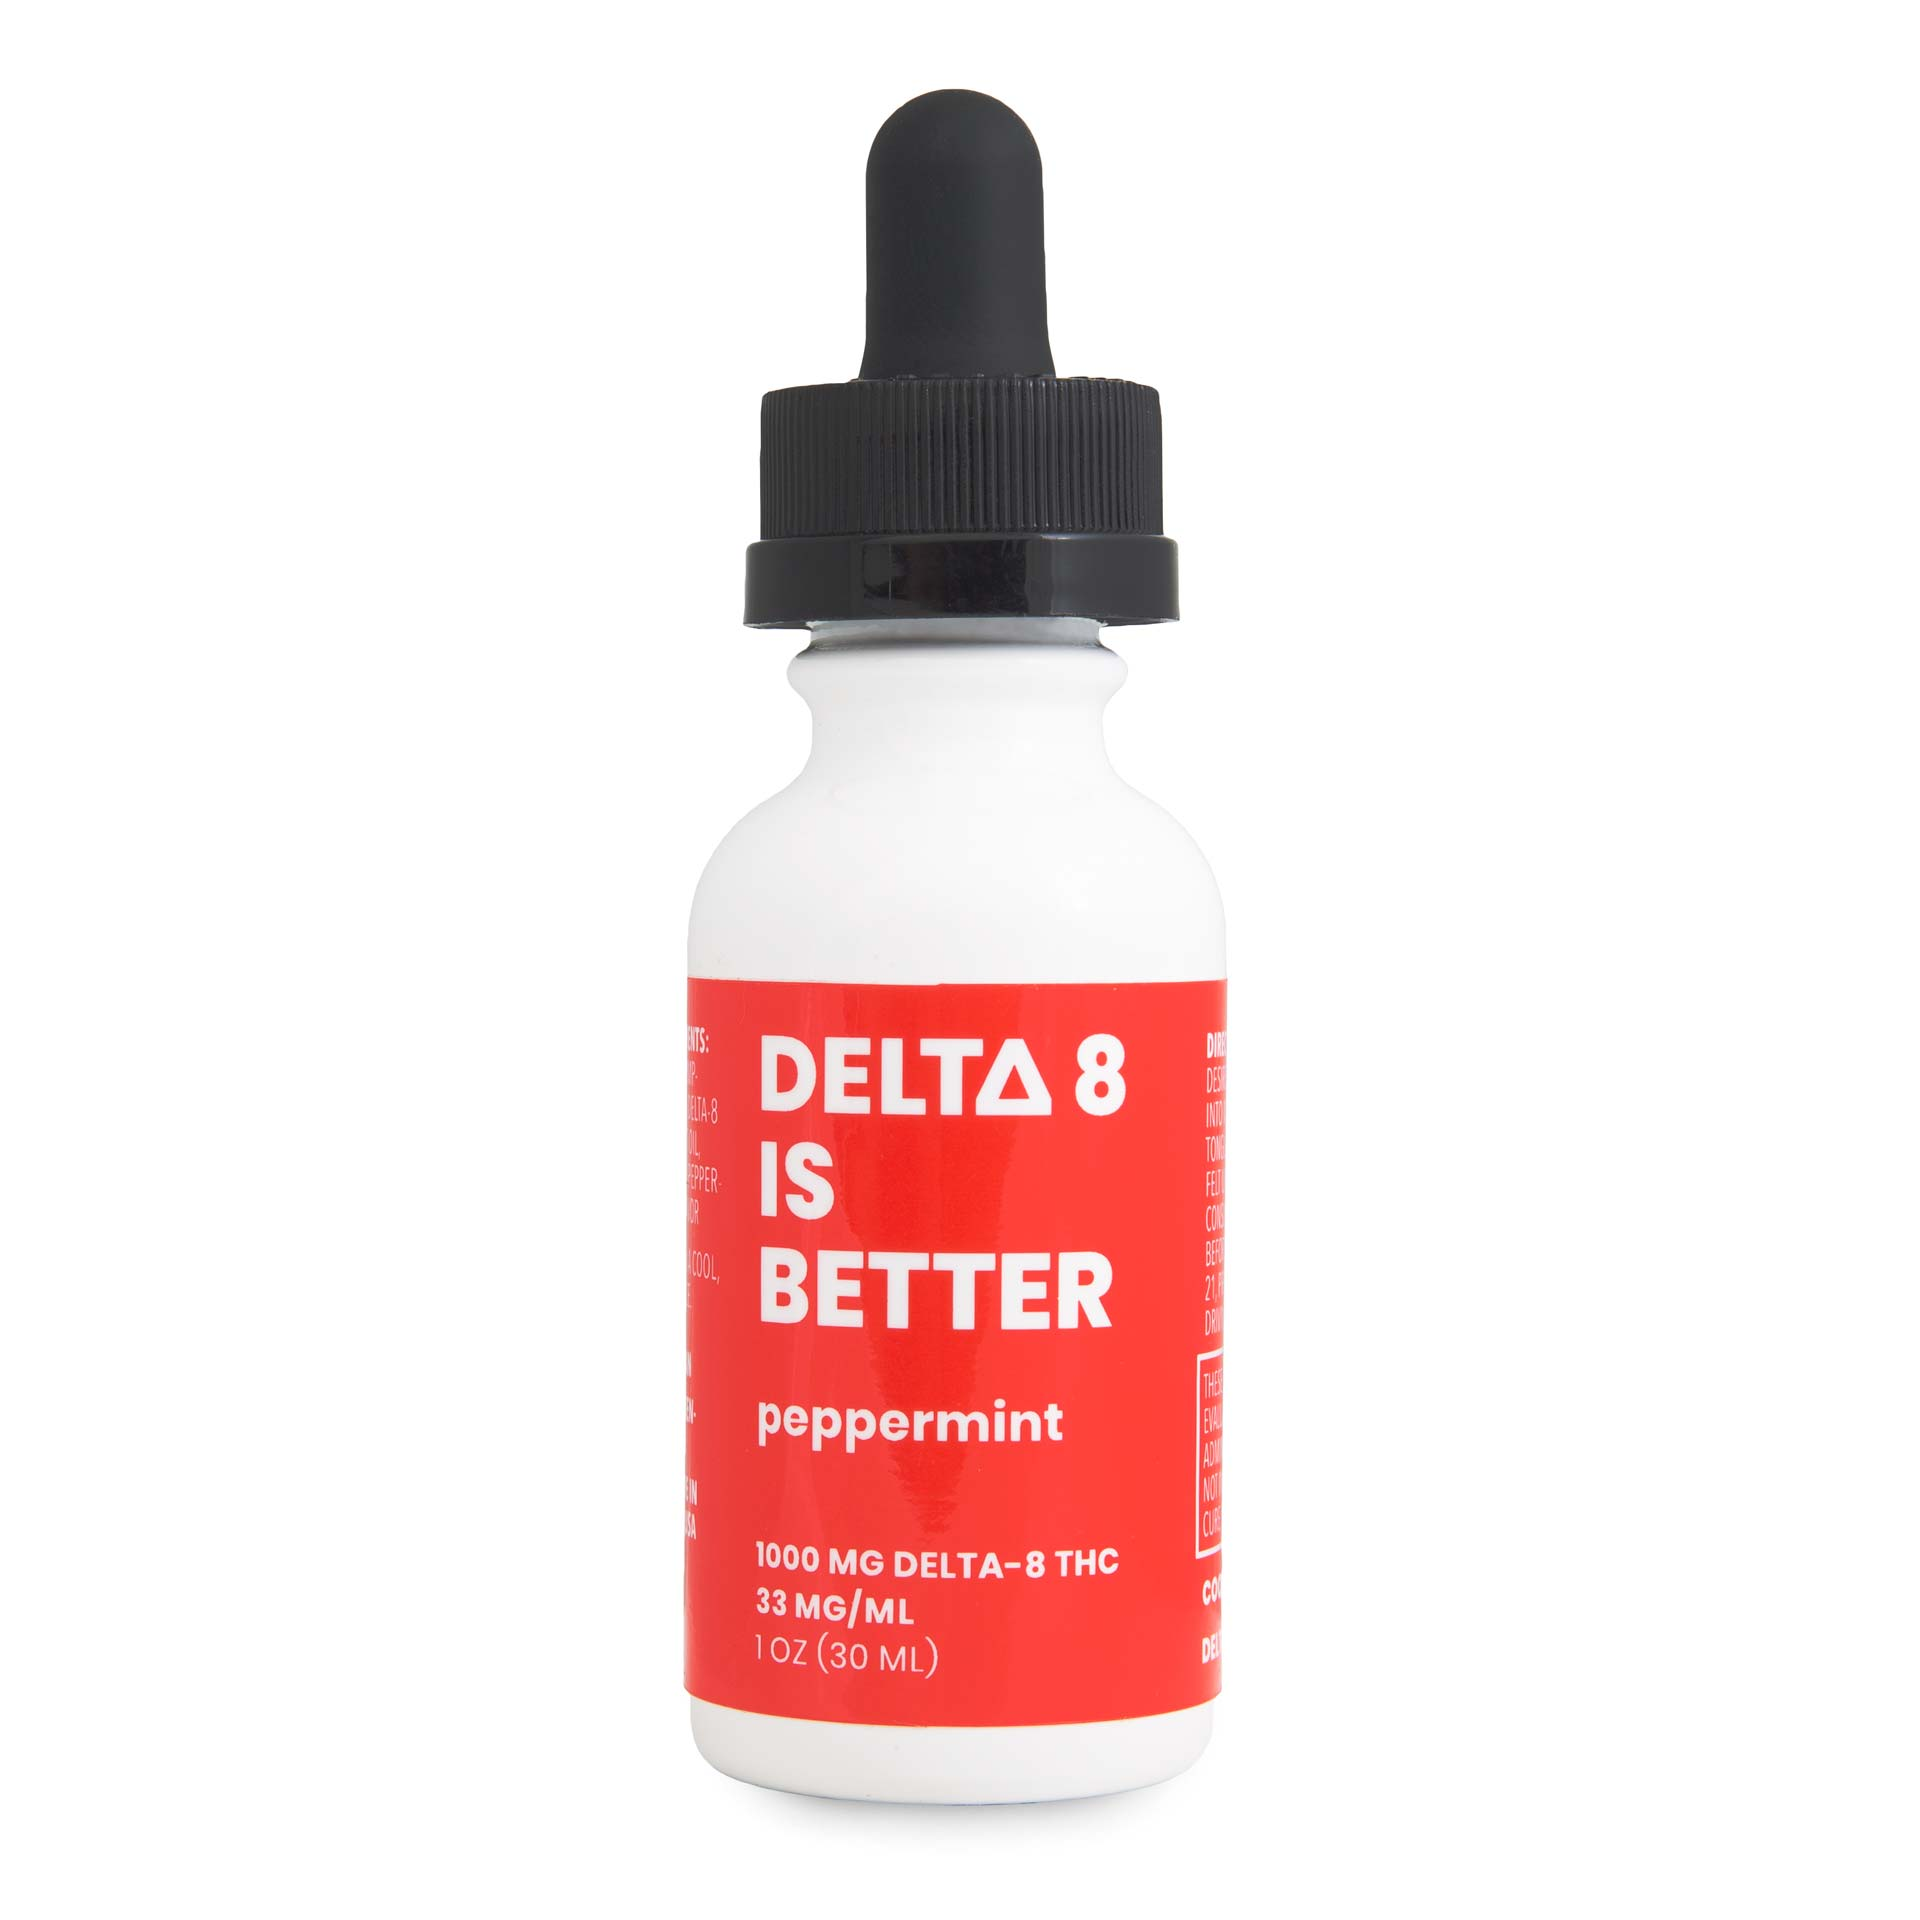 DELTA 8 BETTER 1 OZ TINCTURE 1000MG - PEPPERMINT